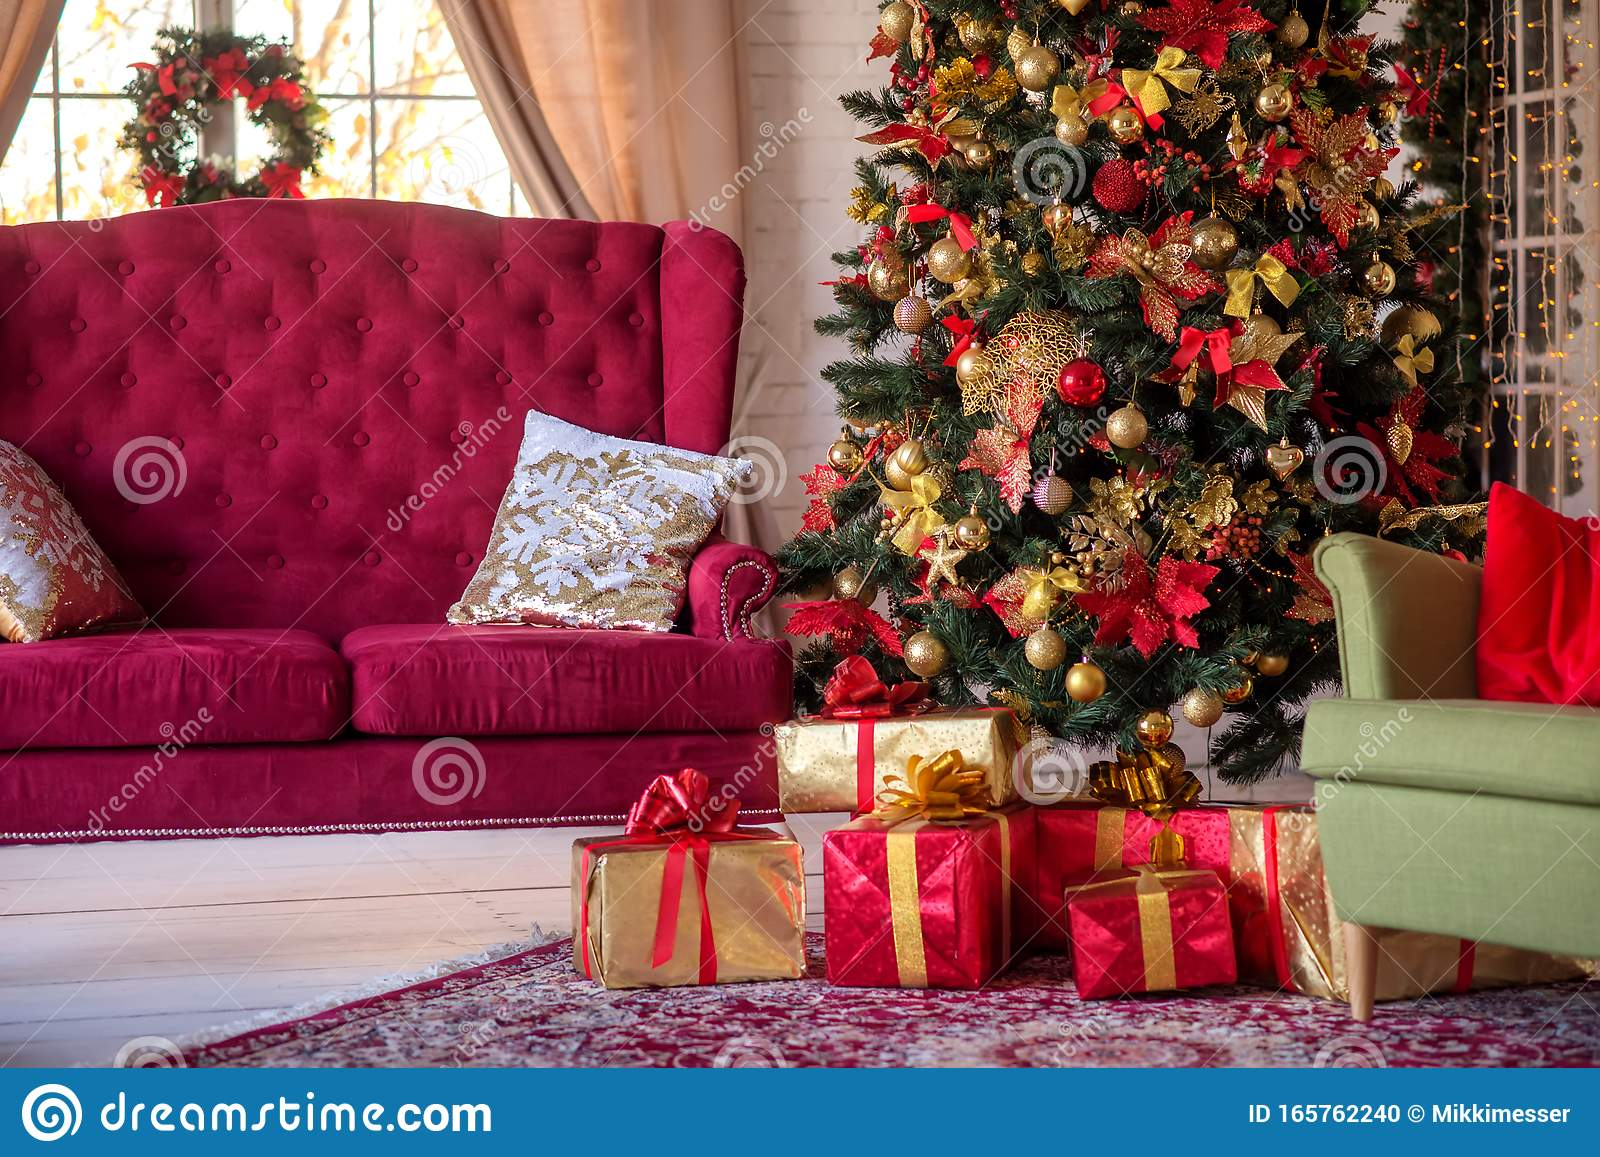 Traditional Festive Advent Interior Decoration Living Room With Maroon Sofa Armchair And Christmas Tree And Gift Boxes Under It Stock Photo Image Of Bows Maroon 165762240